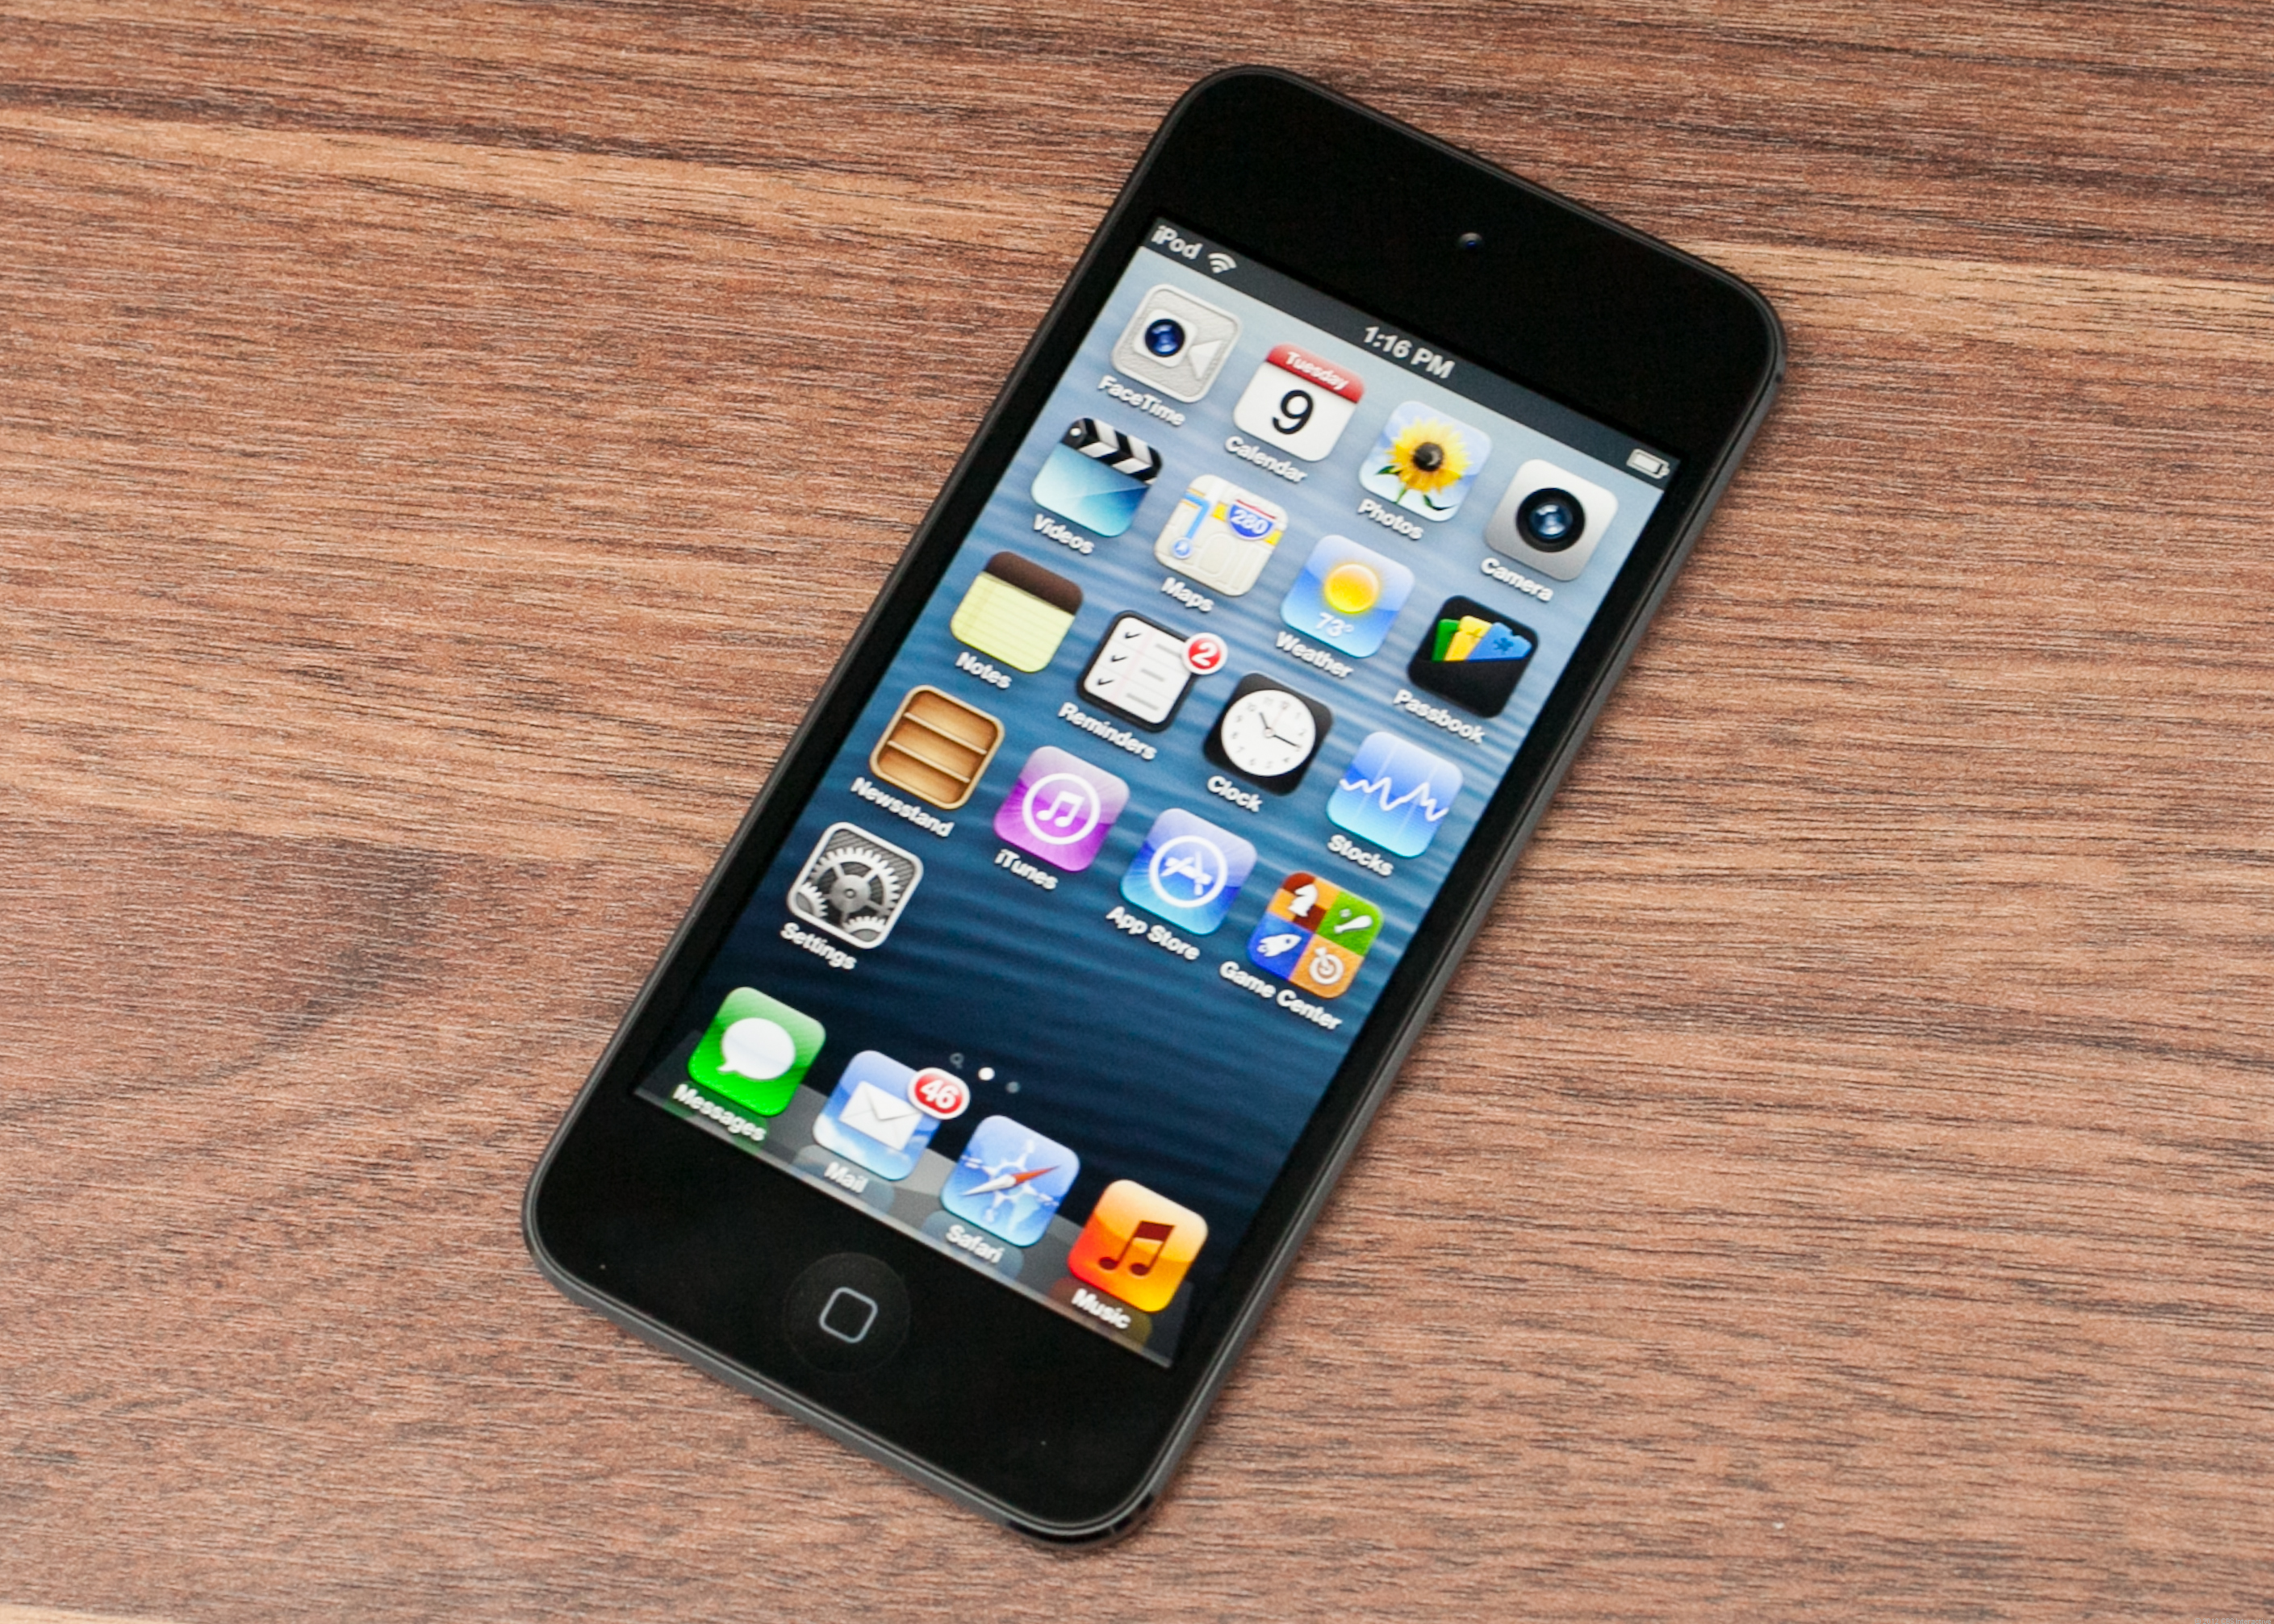 Apple iPod Touch (5th generation, 64GB, yellow)